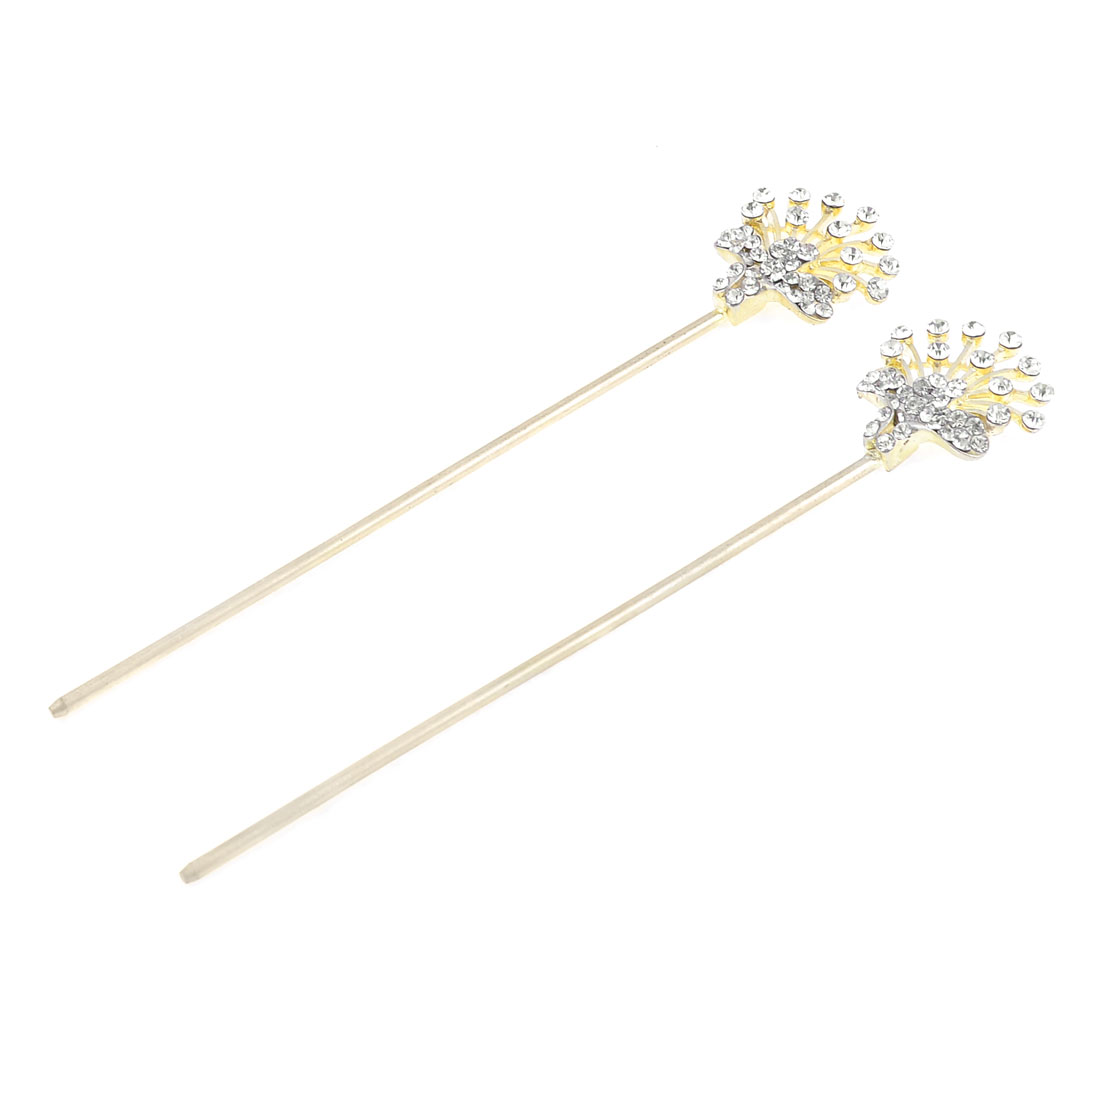 2 Pcs Bling Bling Rhinestones Cluster Peacock Tail Detail Hair Sticks Gold Tone